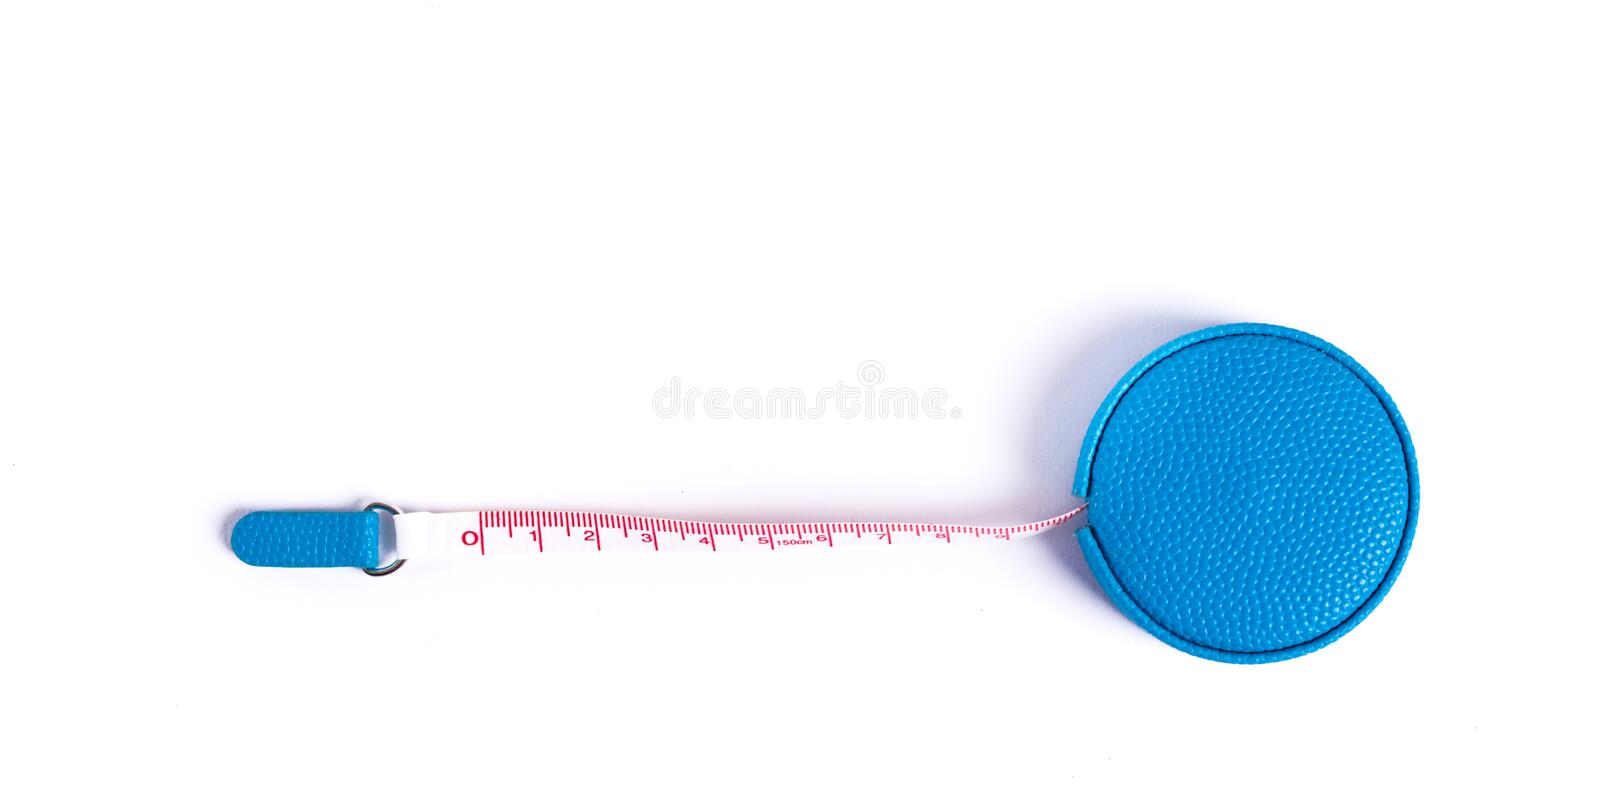 Tape measure for inches, centimeter, and millimeter. Small tape measure - measuring tool for inches, centimeter, and millimeter stock image